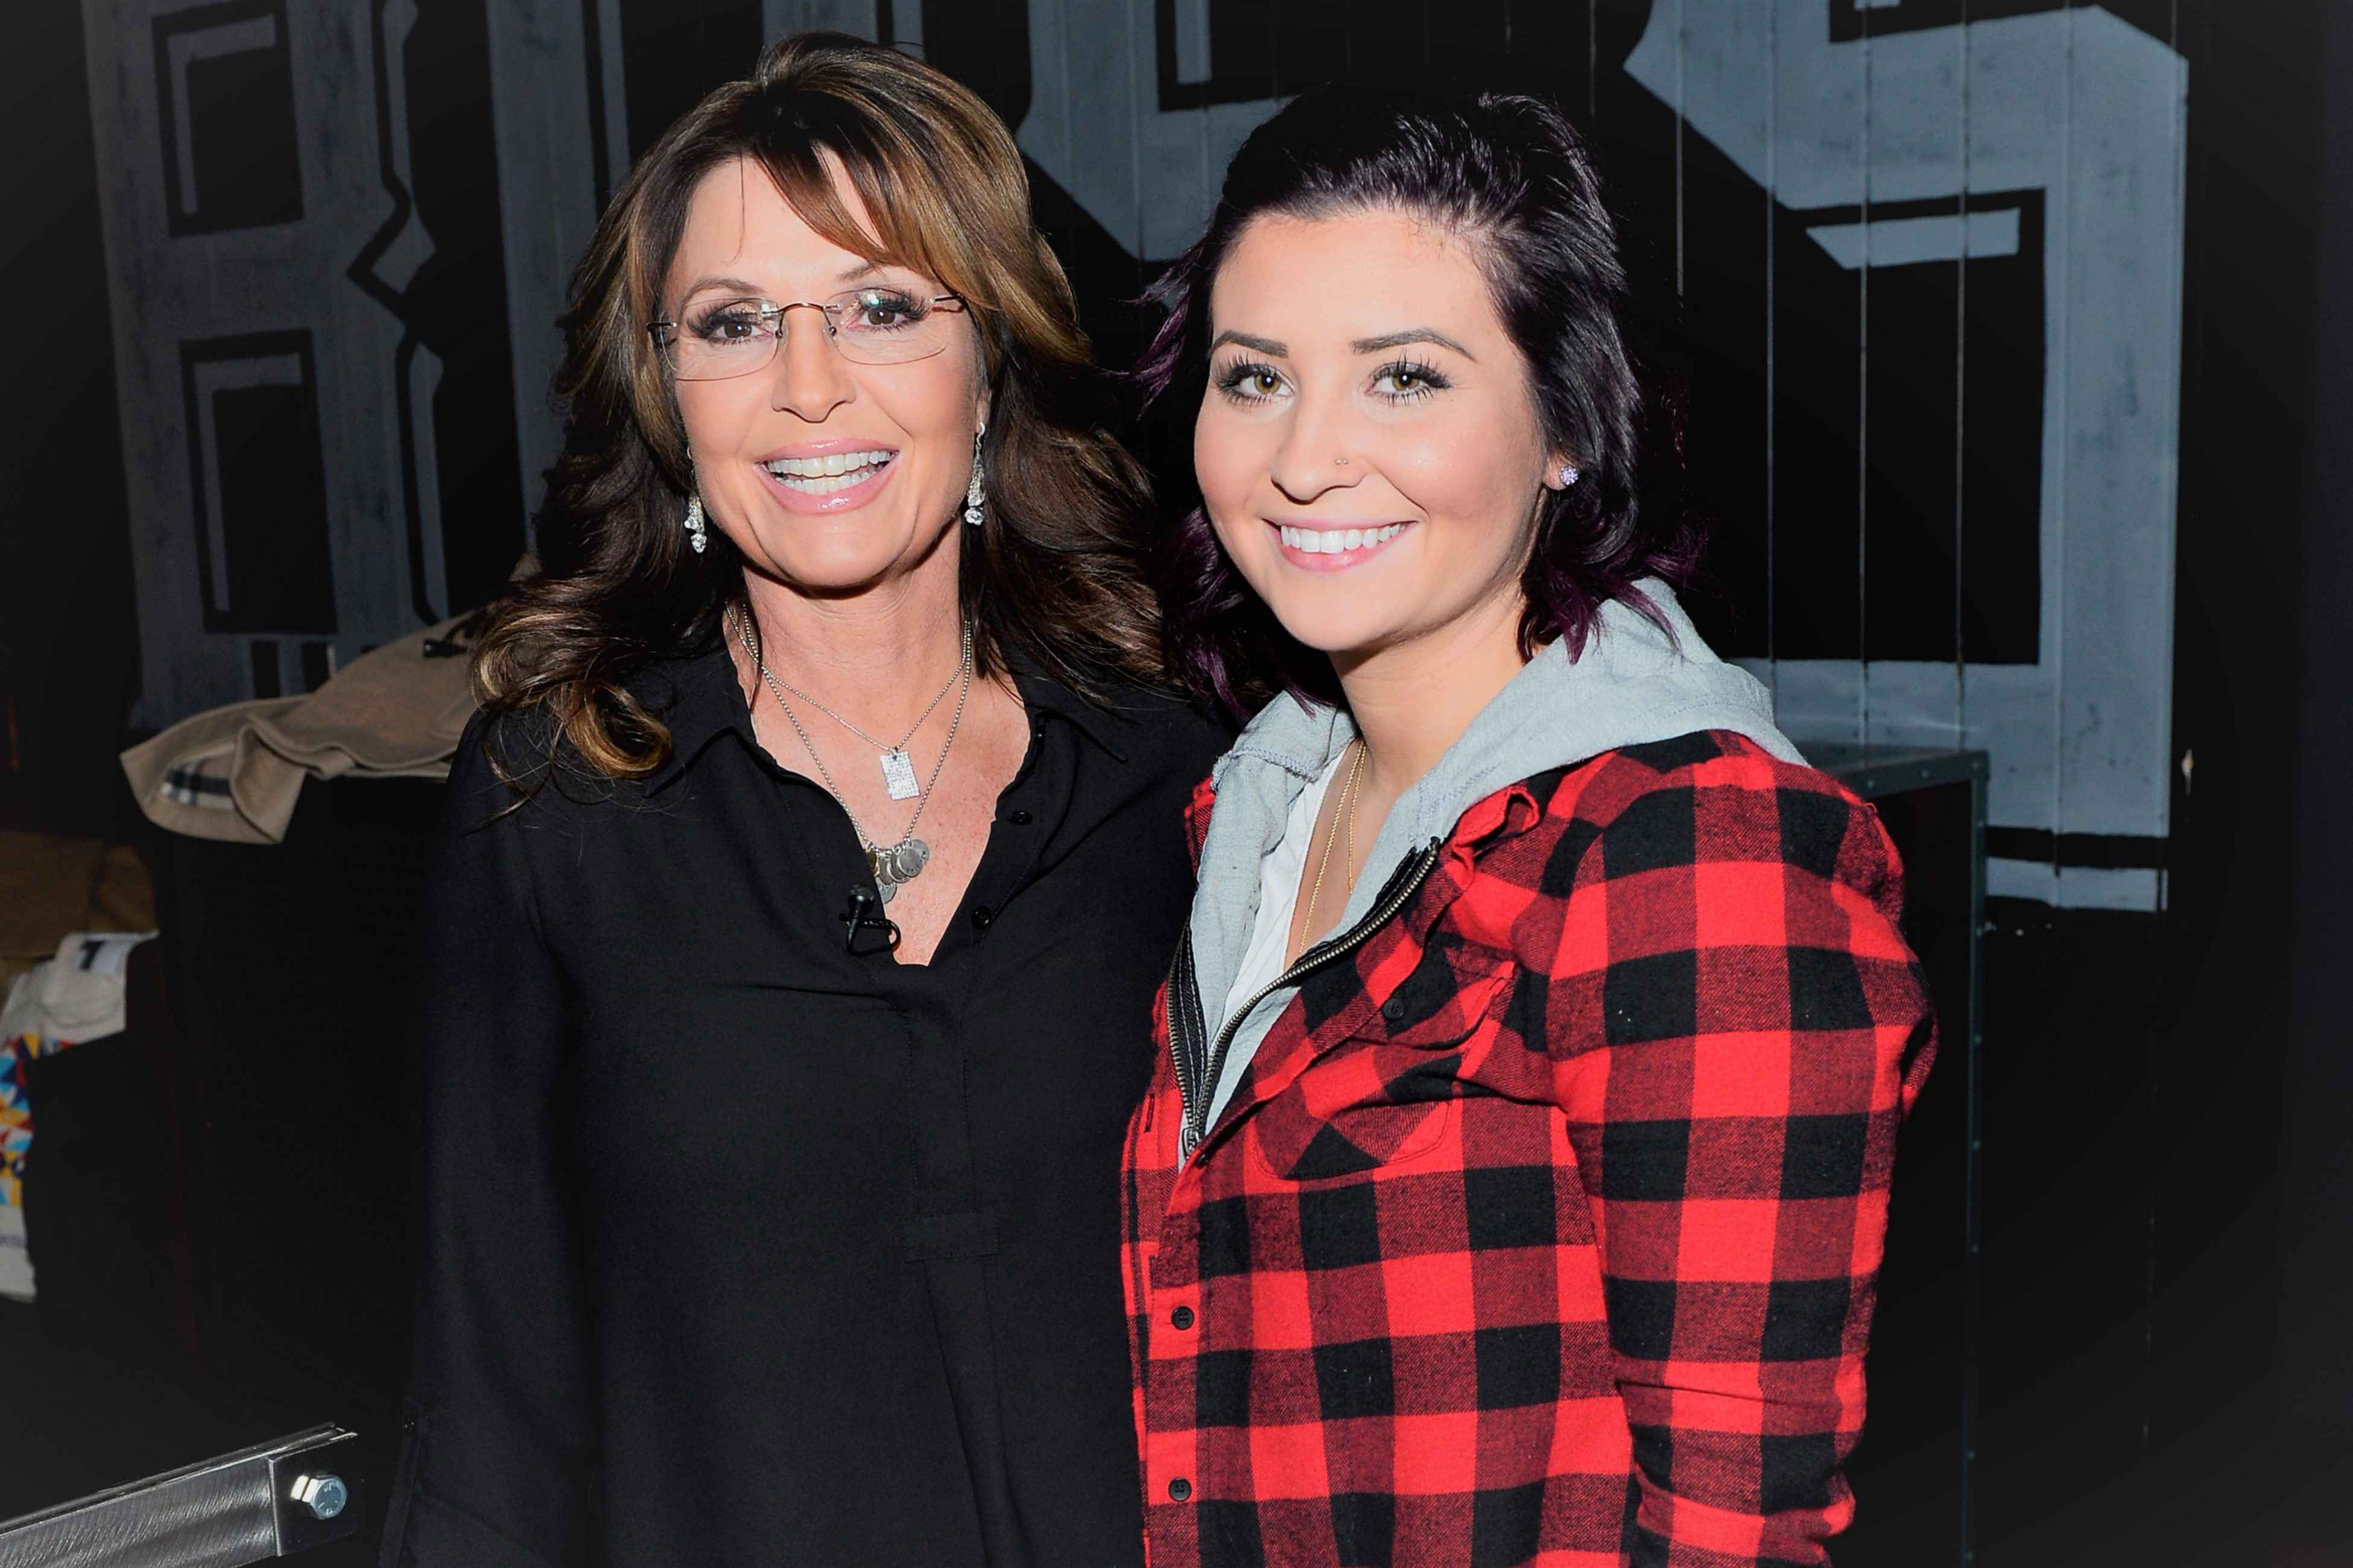 Sarah Palin and Daughter Willow Palin